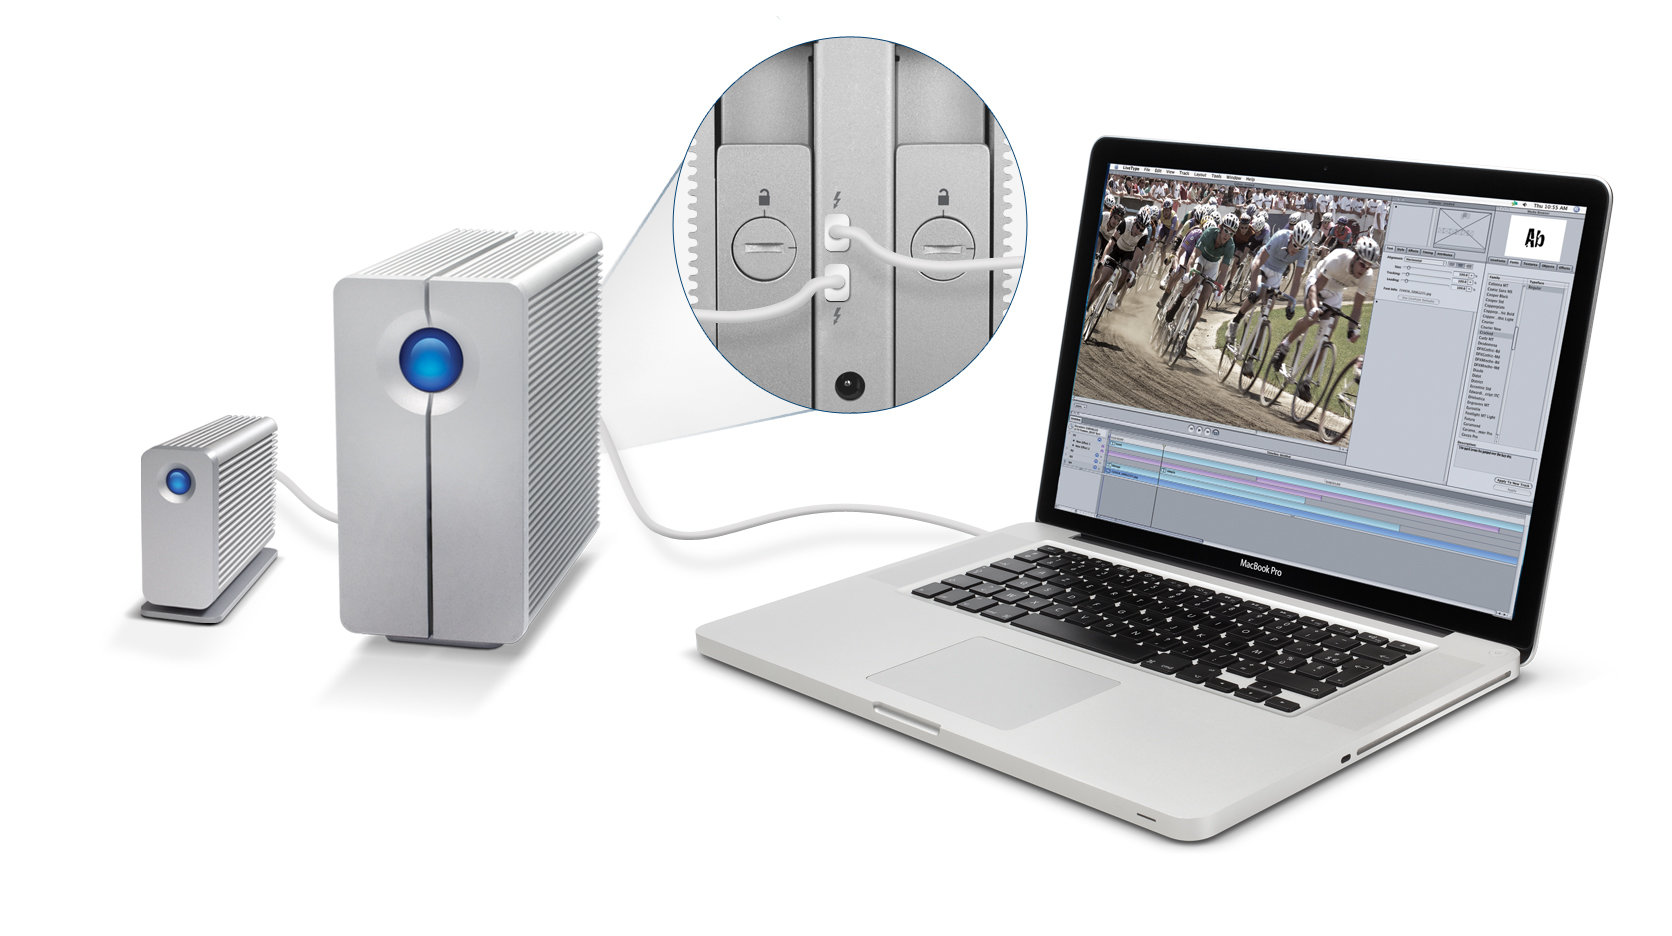 LaCie 2big und eSATA Hub Thunderbird-Serie am Macbook